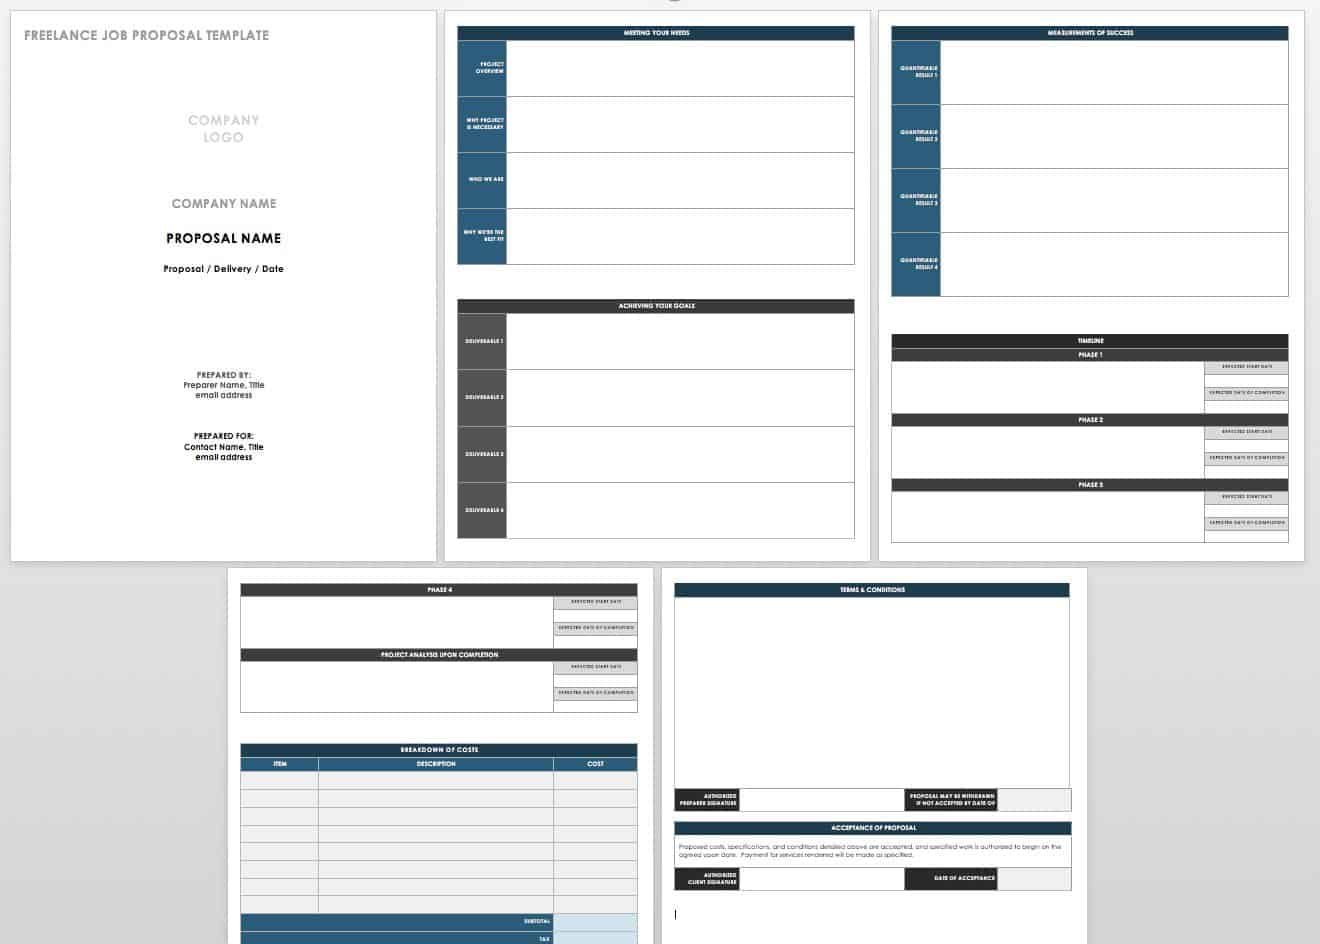 Free Job Proposal Templates | Smartsheet